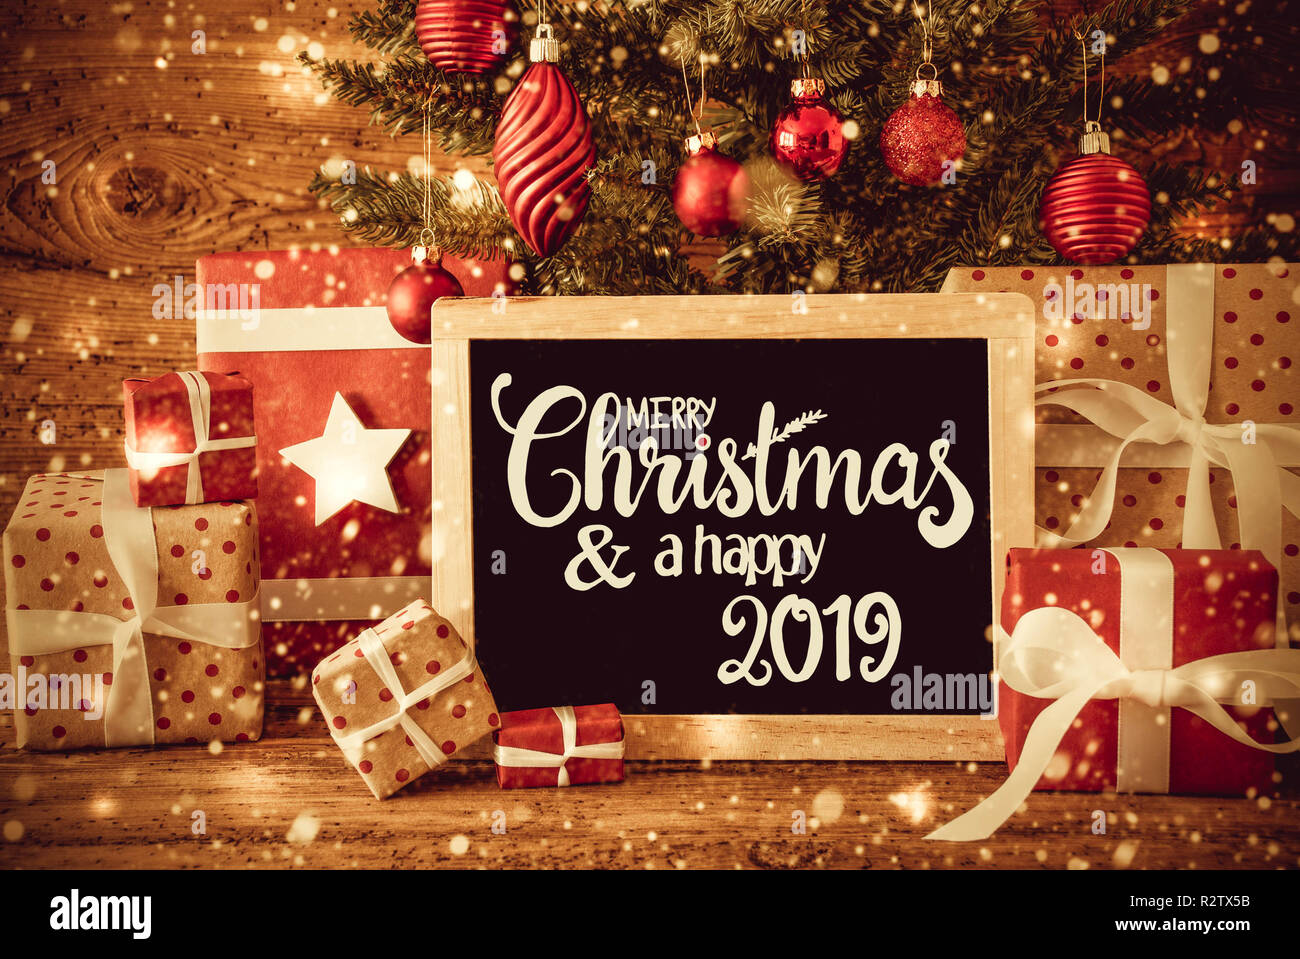 Merry Christmas 2019.Bright Tree Gifts Calligraphy Merry Christmas And A Happy